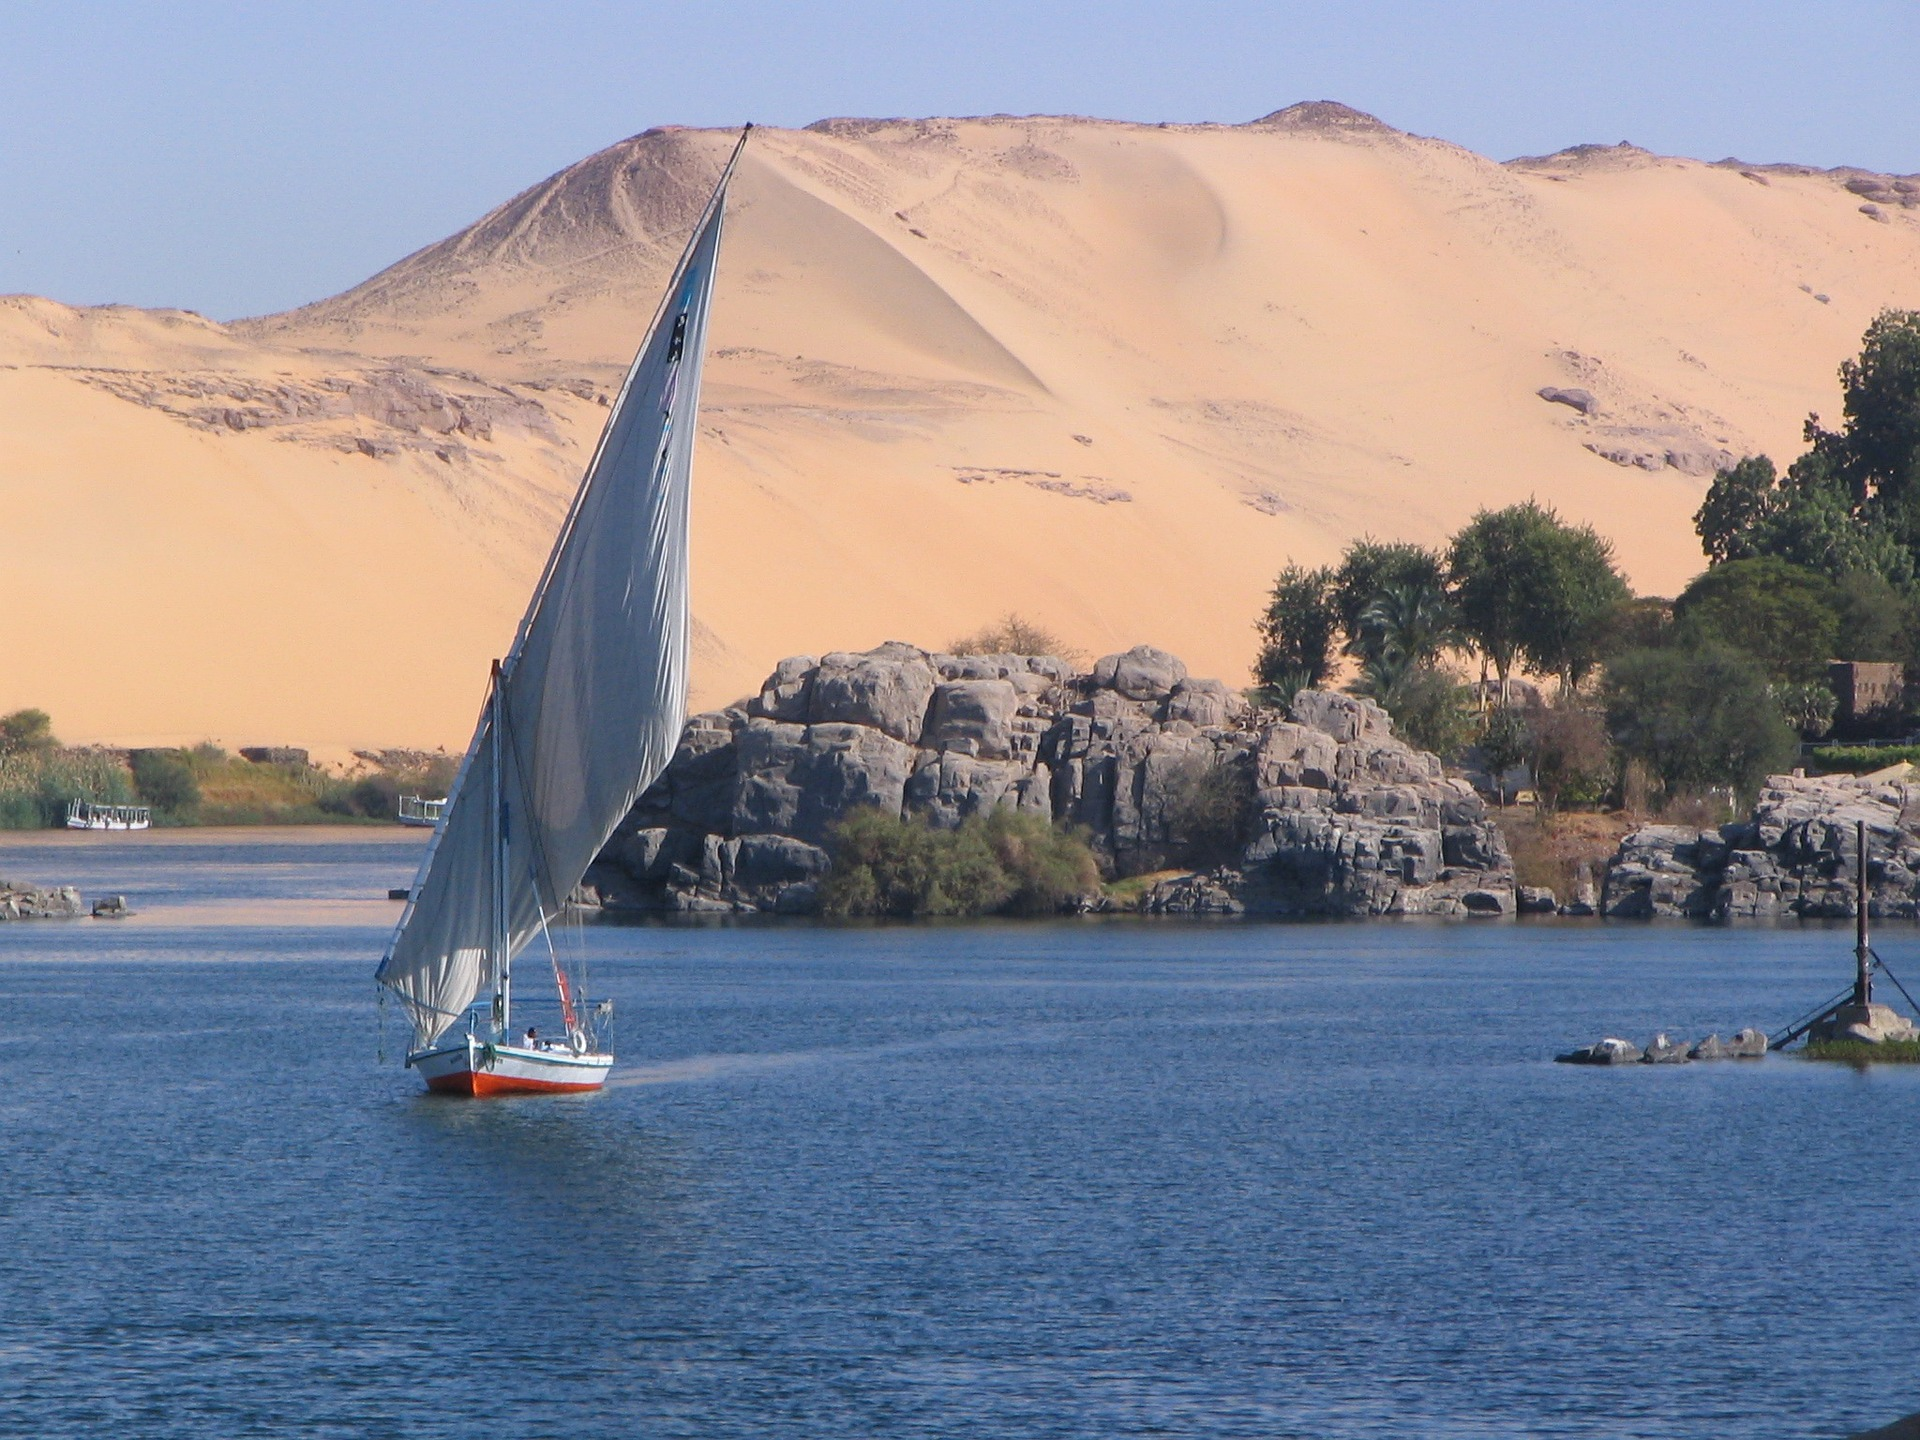 Elephantine, island in the Nile, Egypt